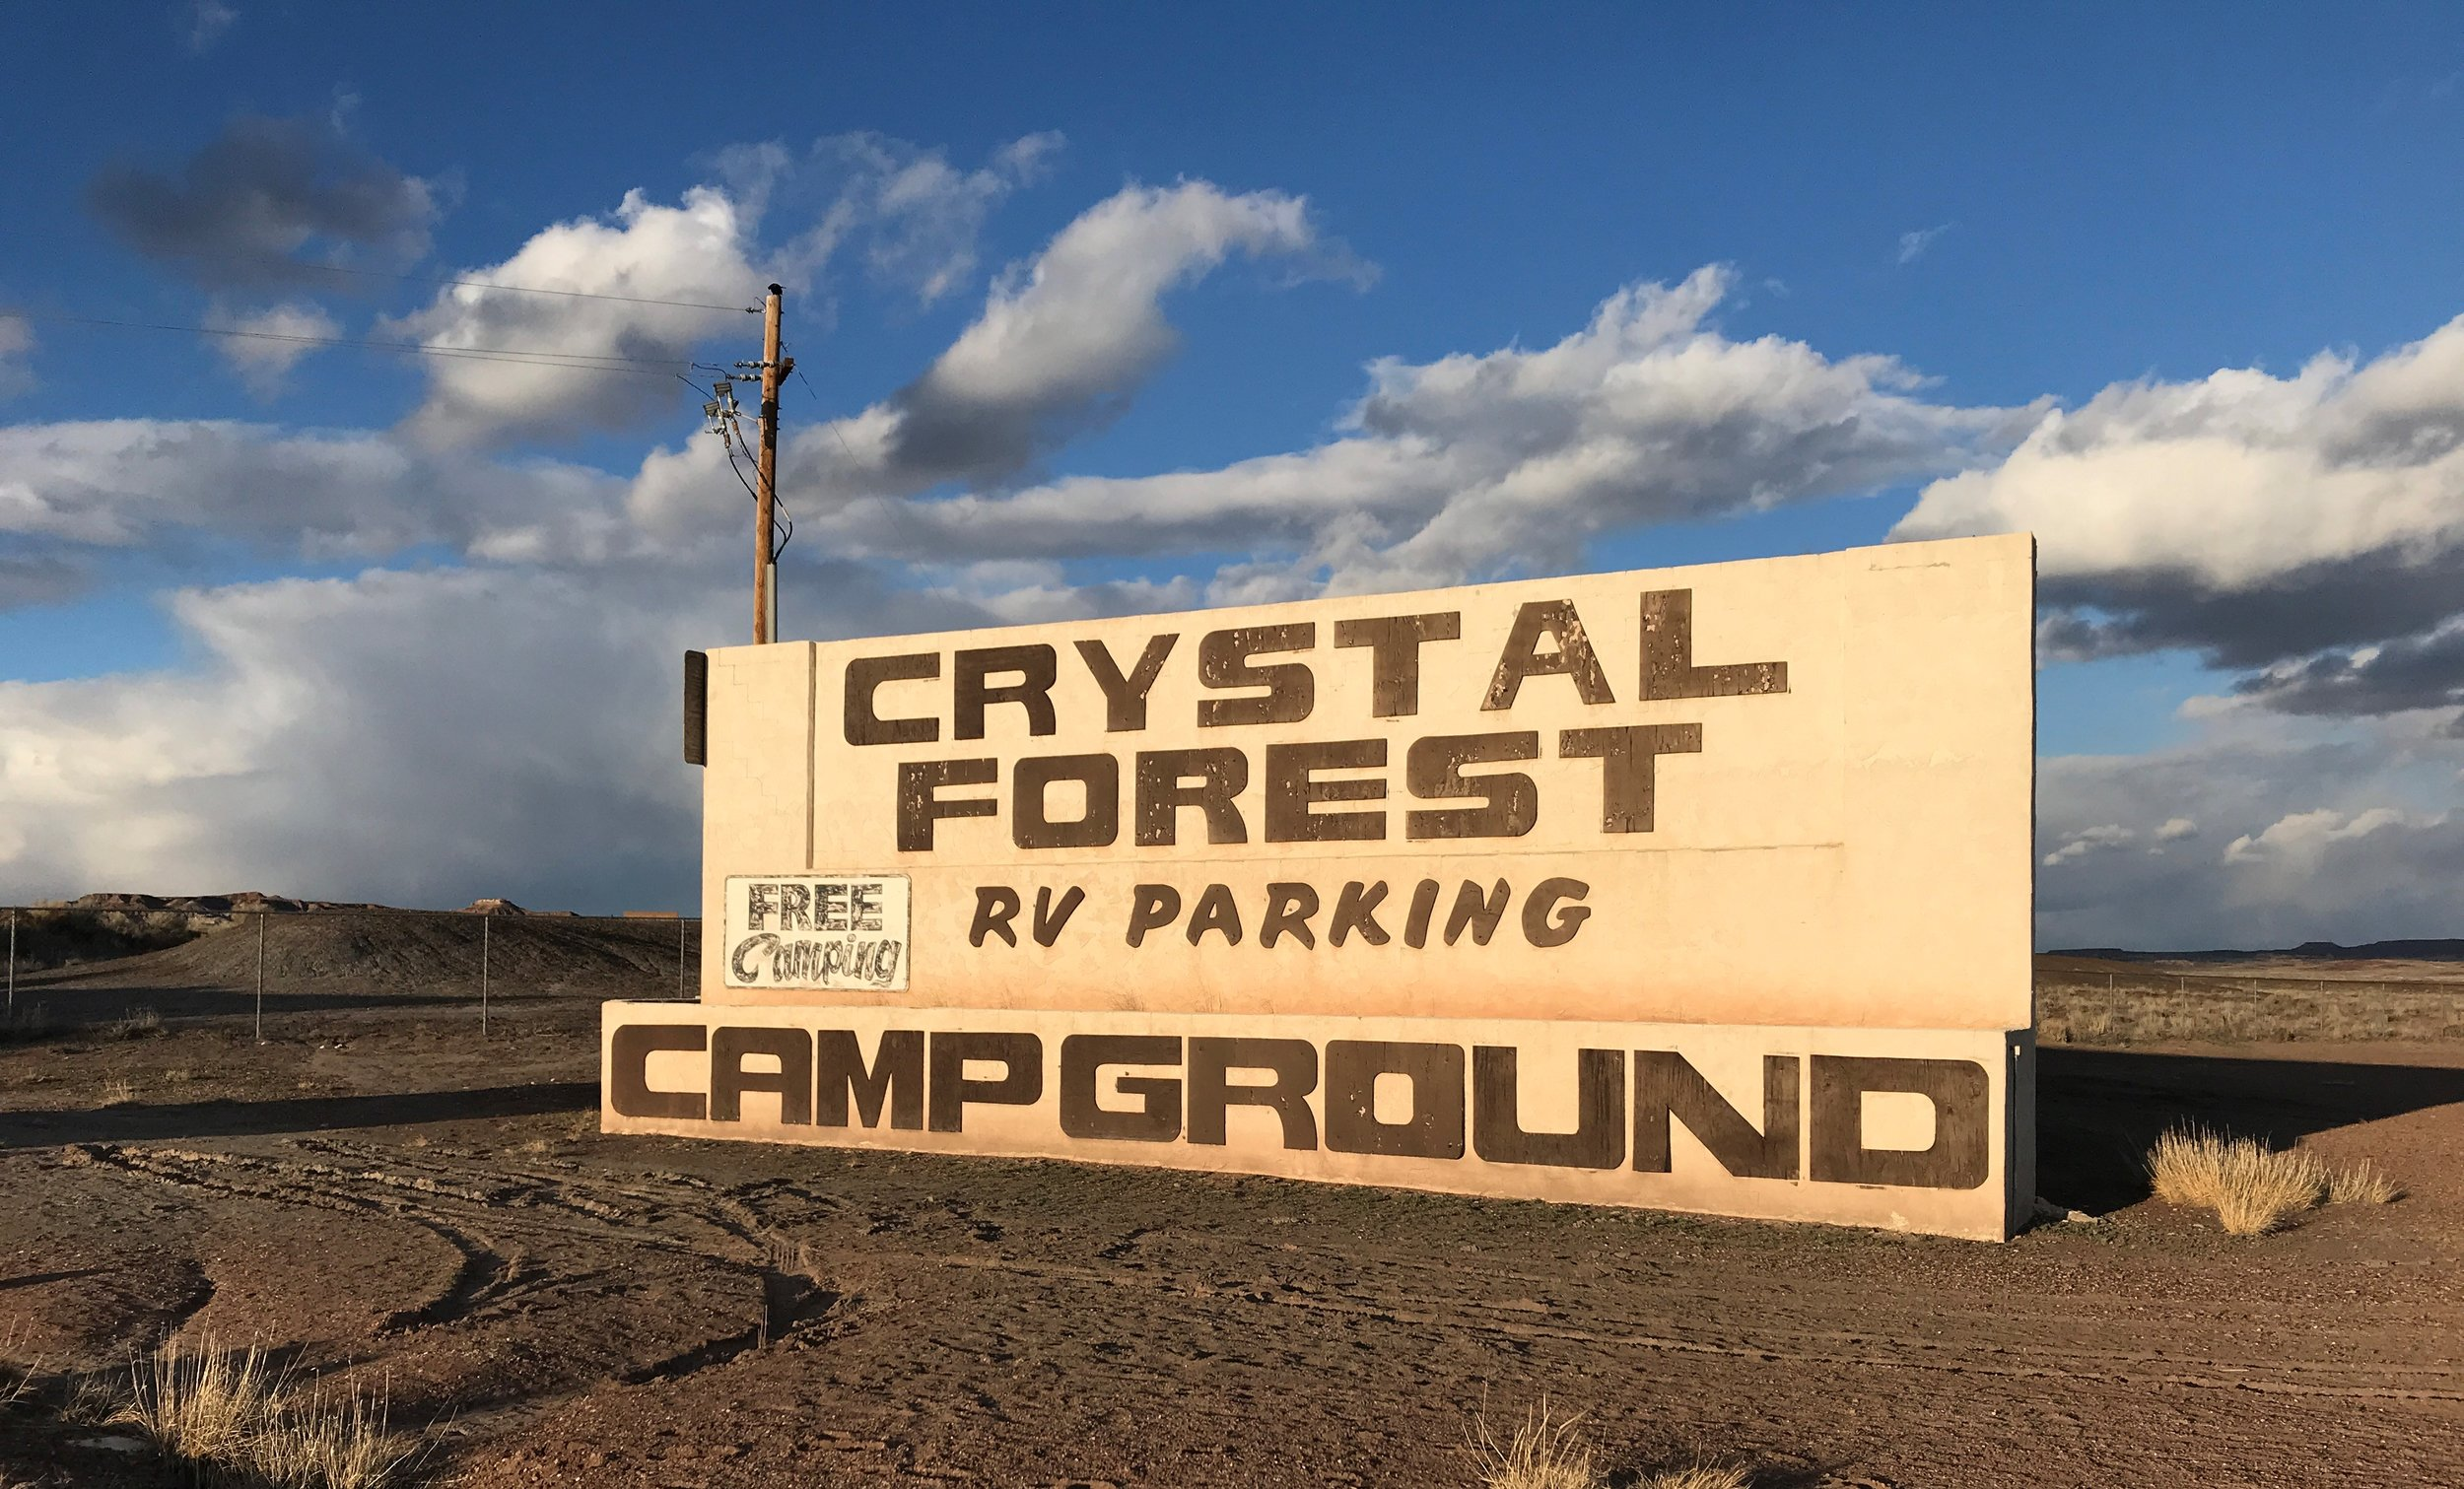 Free overnight camping in the parking lot